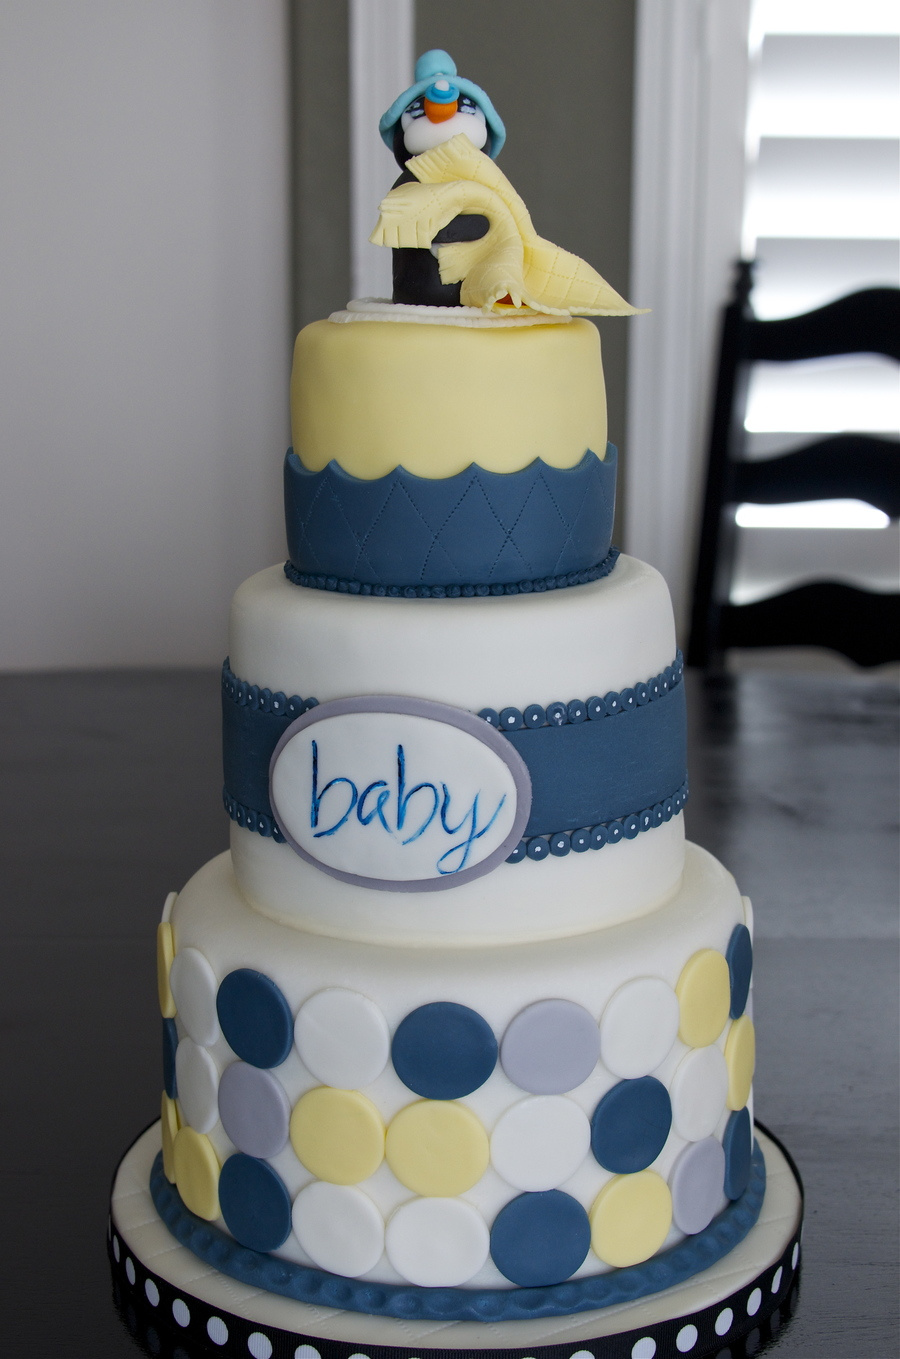 Baby Shower Cake...nursery Colors Are Navy Blue, Yellow, Gray And White.  Mom To Be Loves Penguins So There Is A Baby Penguin At The Top.